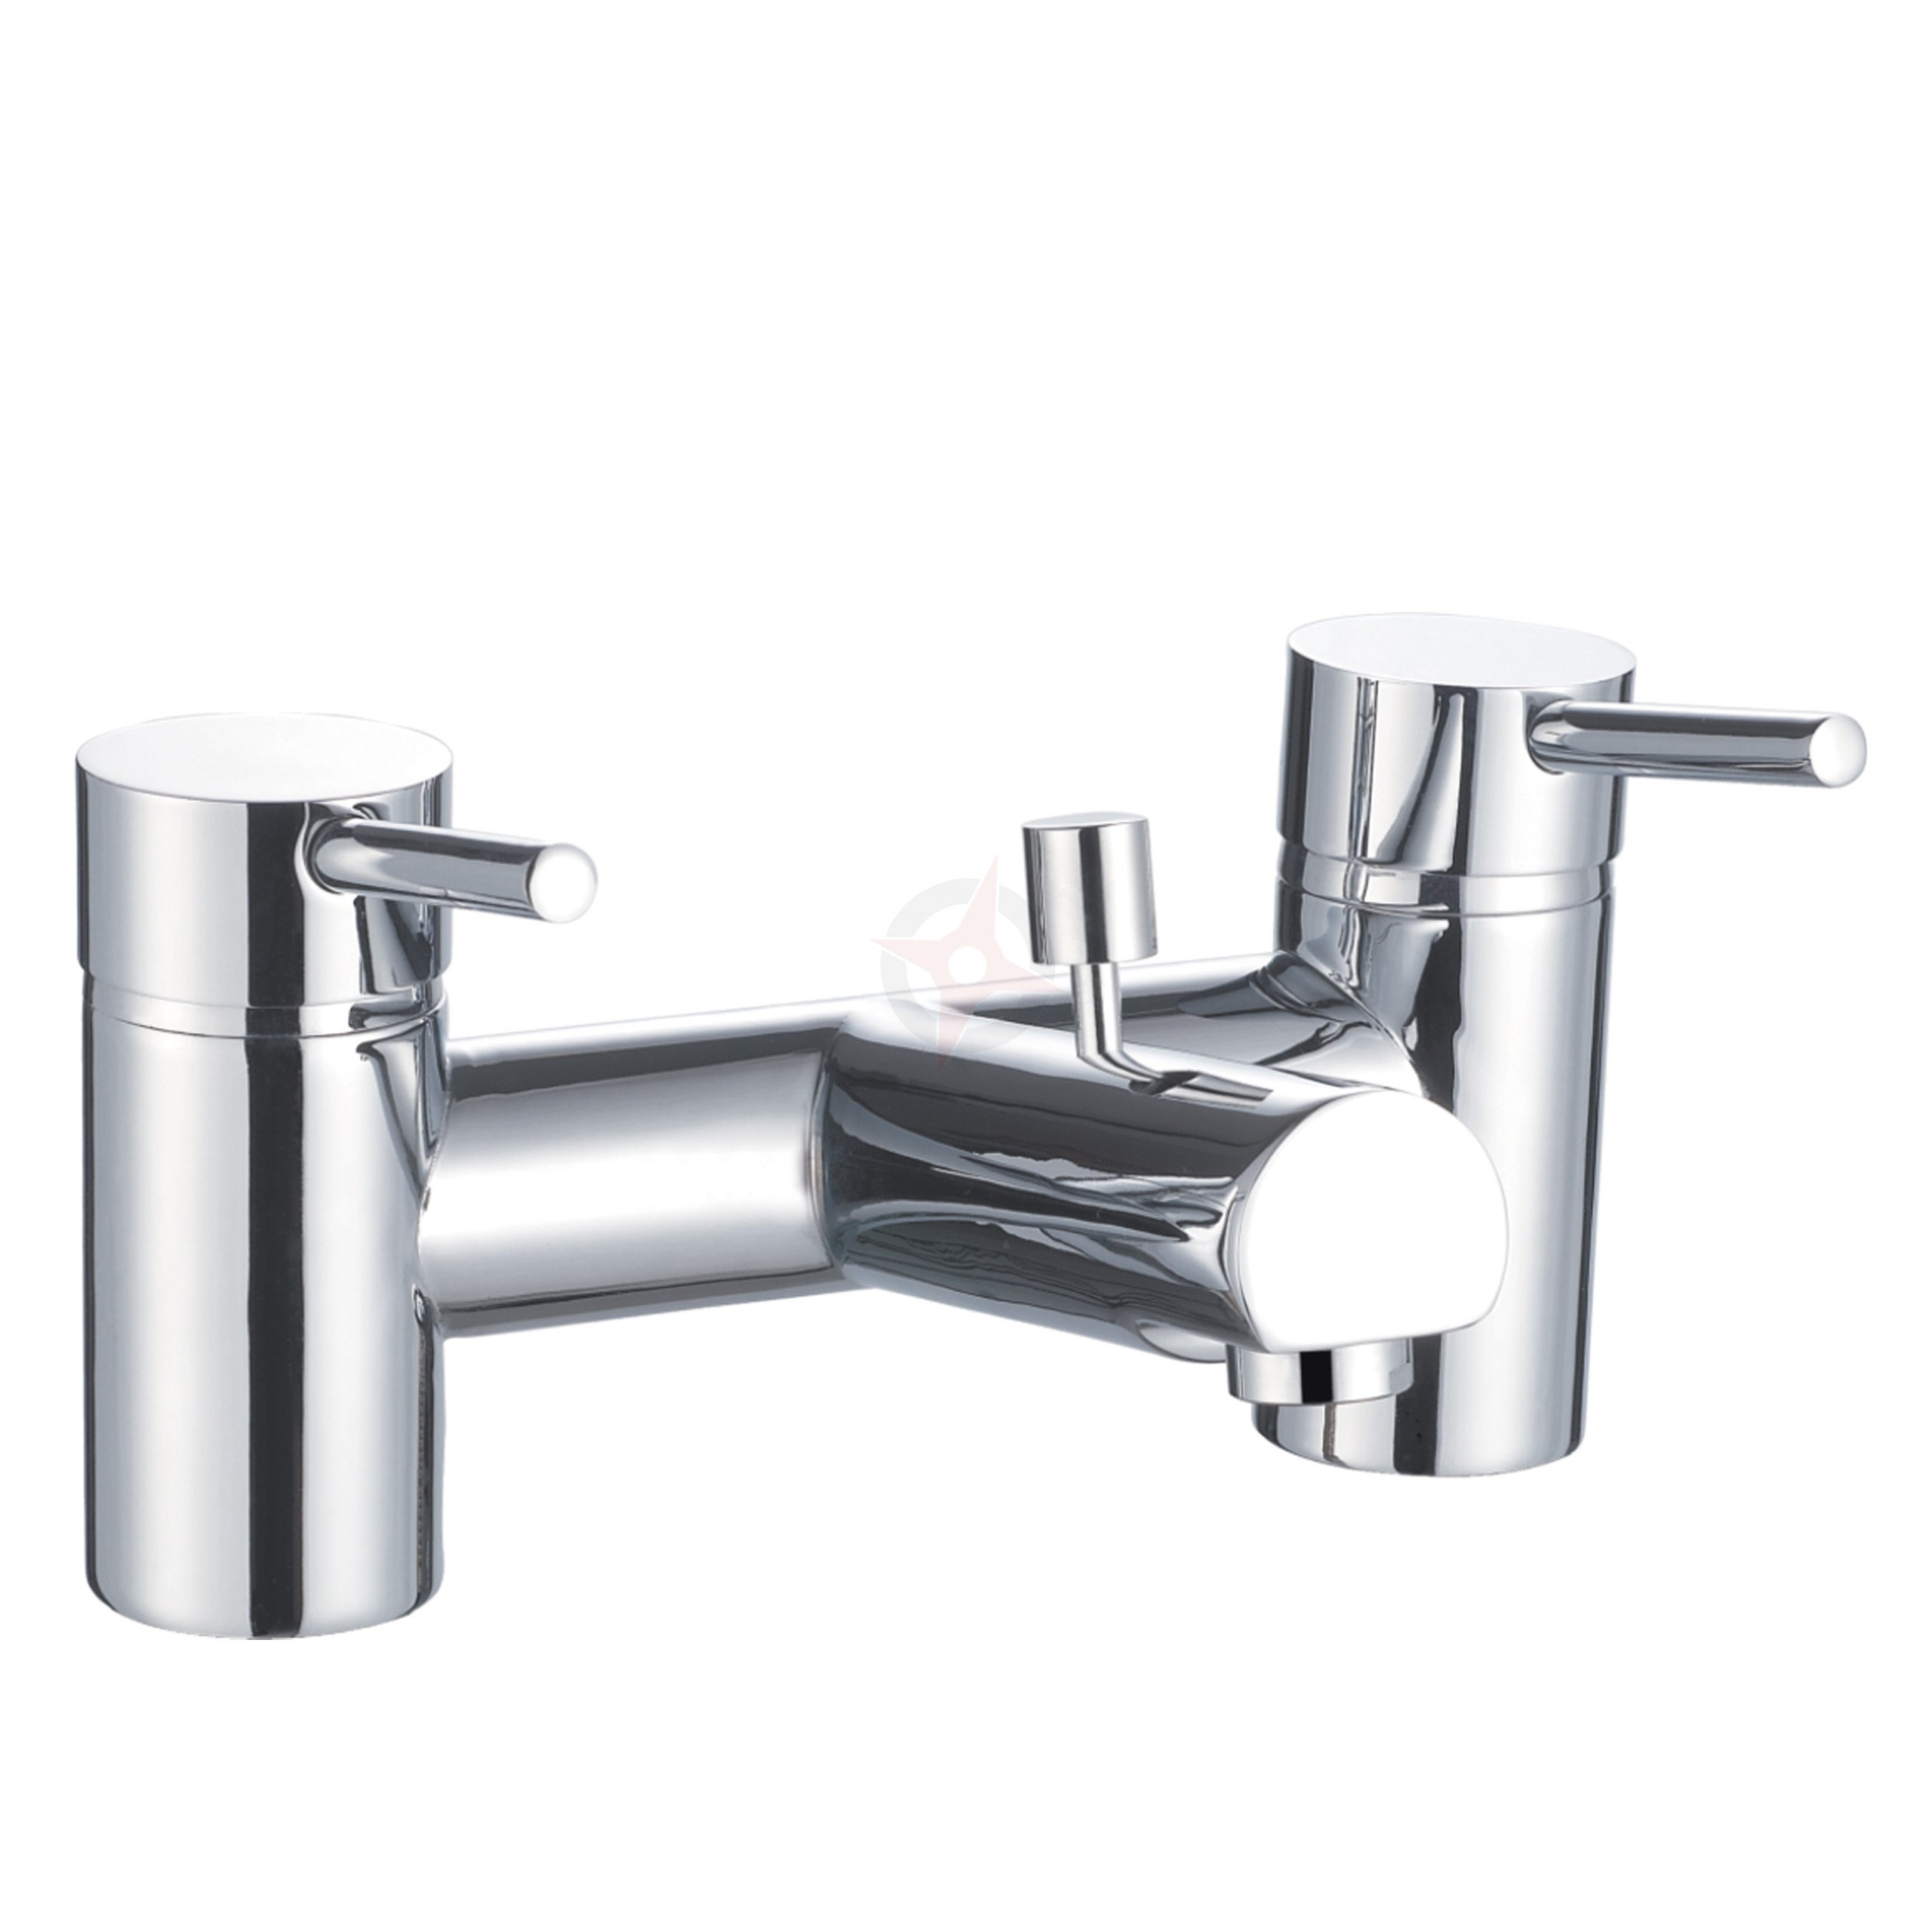 Lavata Contemporary Bath Shower Mixer c/w Shower Kit